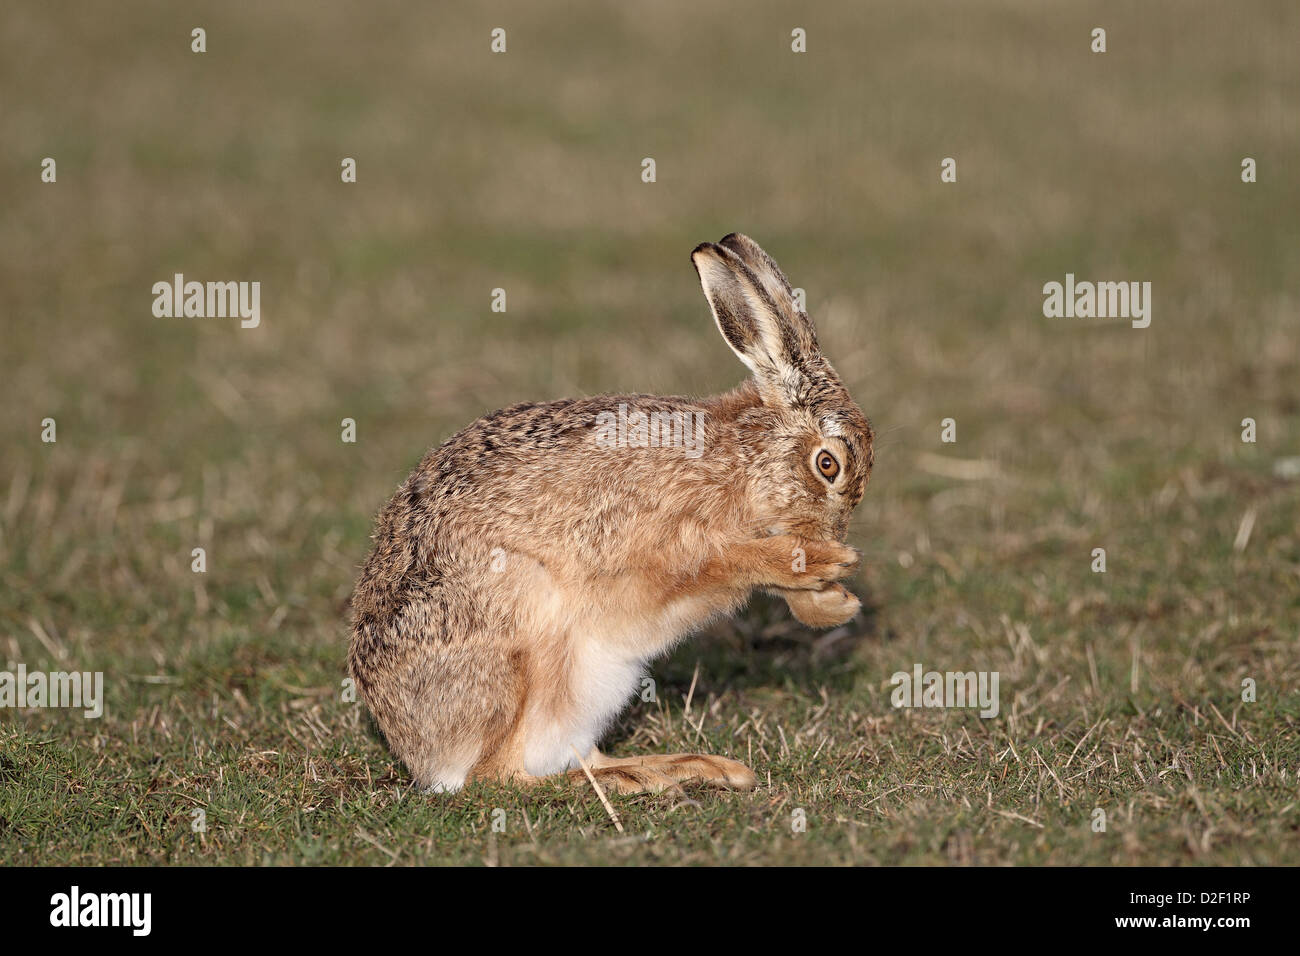 Brown Hare, Lepus capensis, cleaning fur - Stock Image